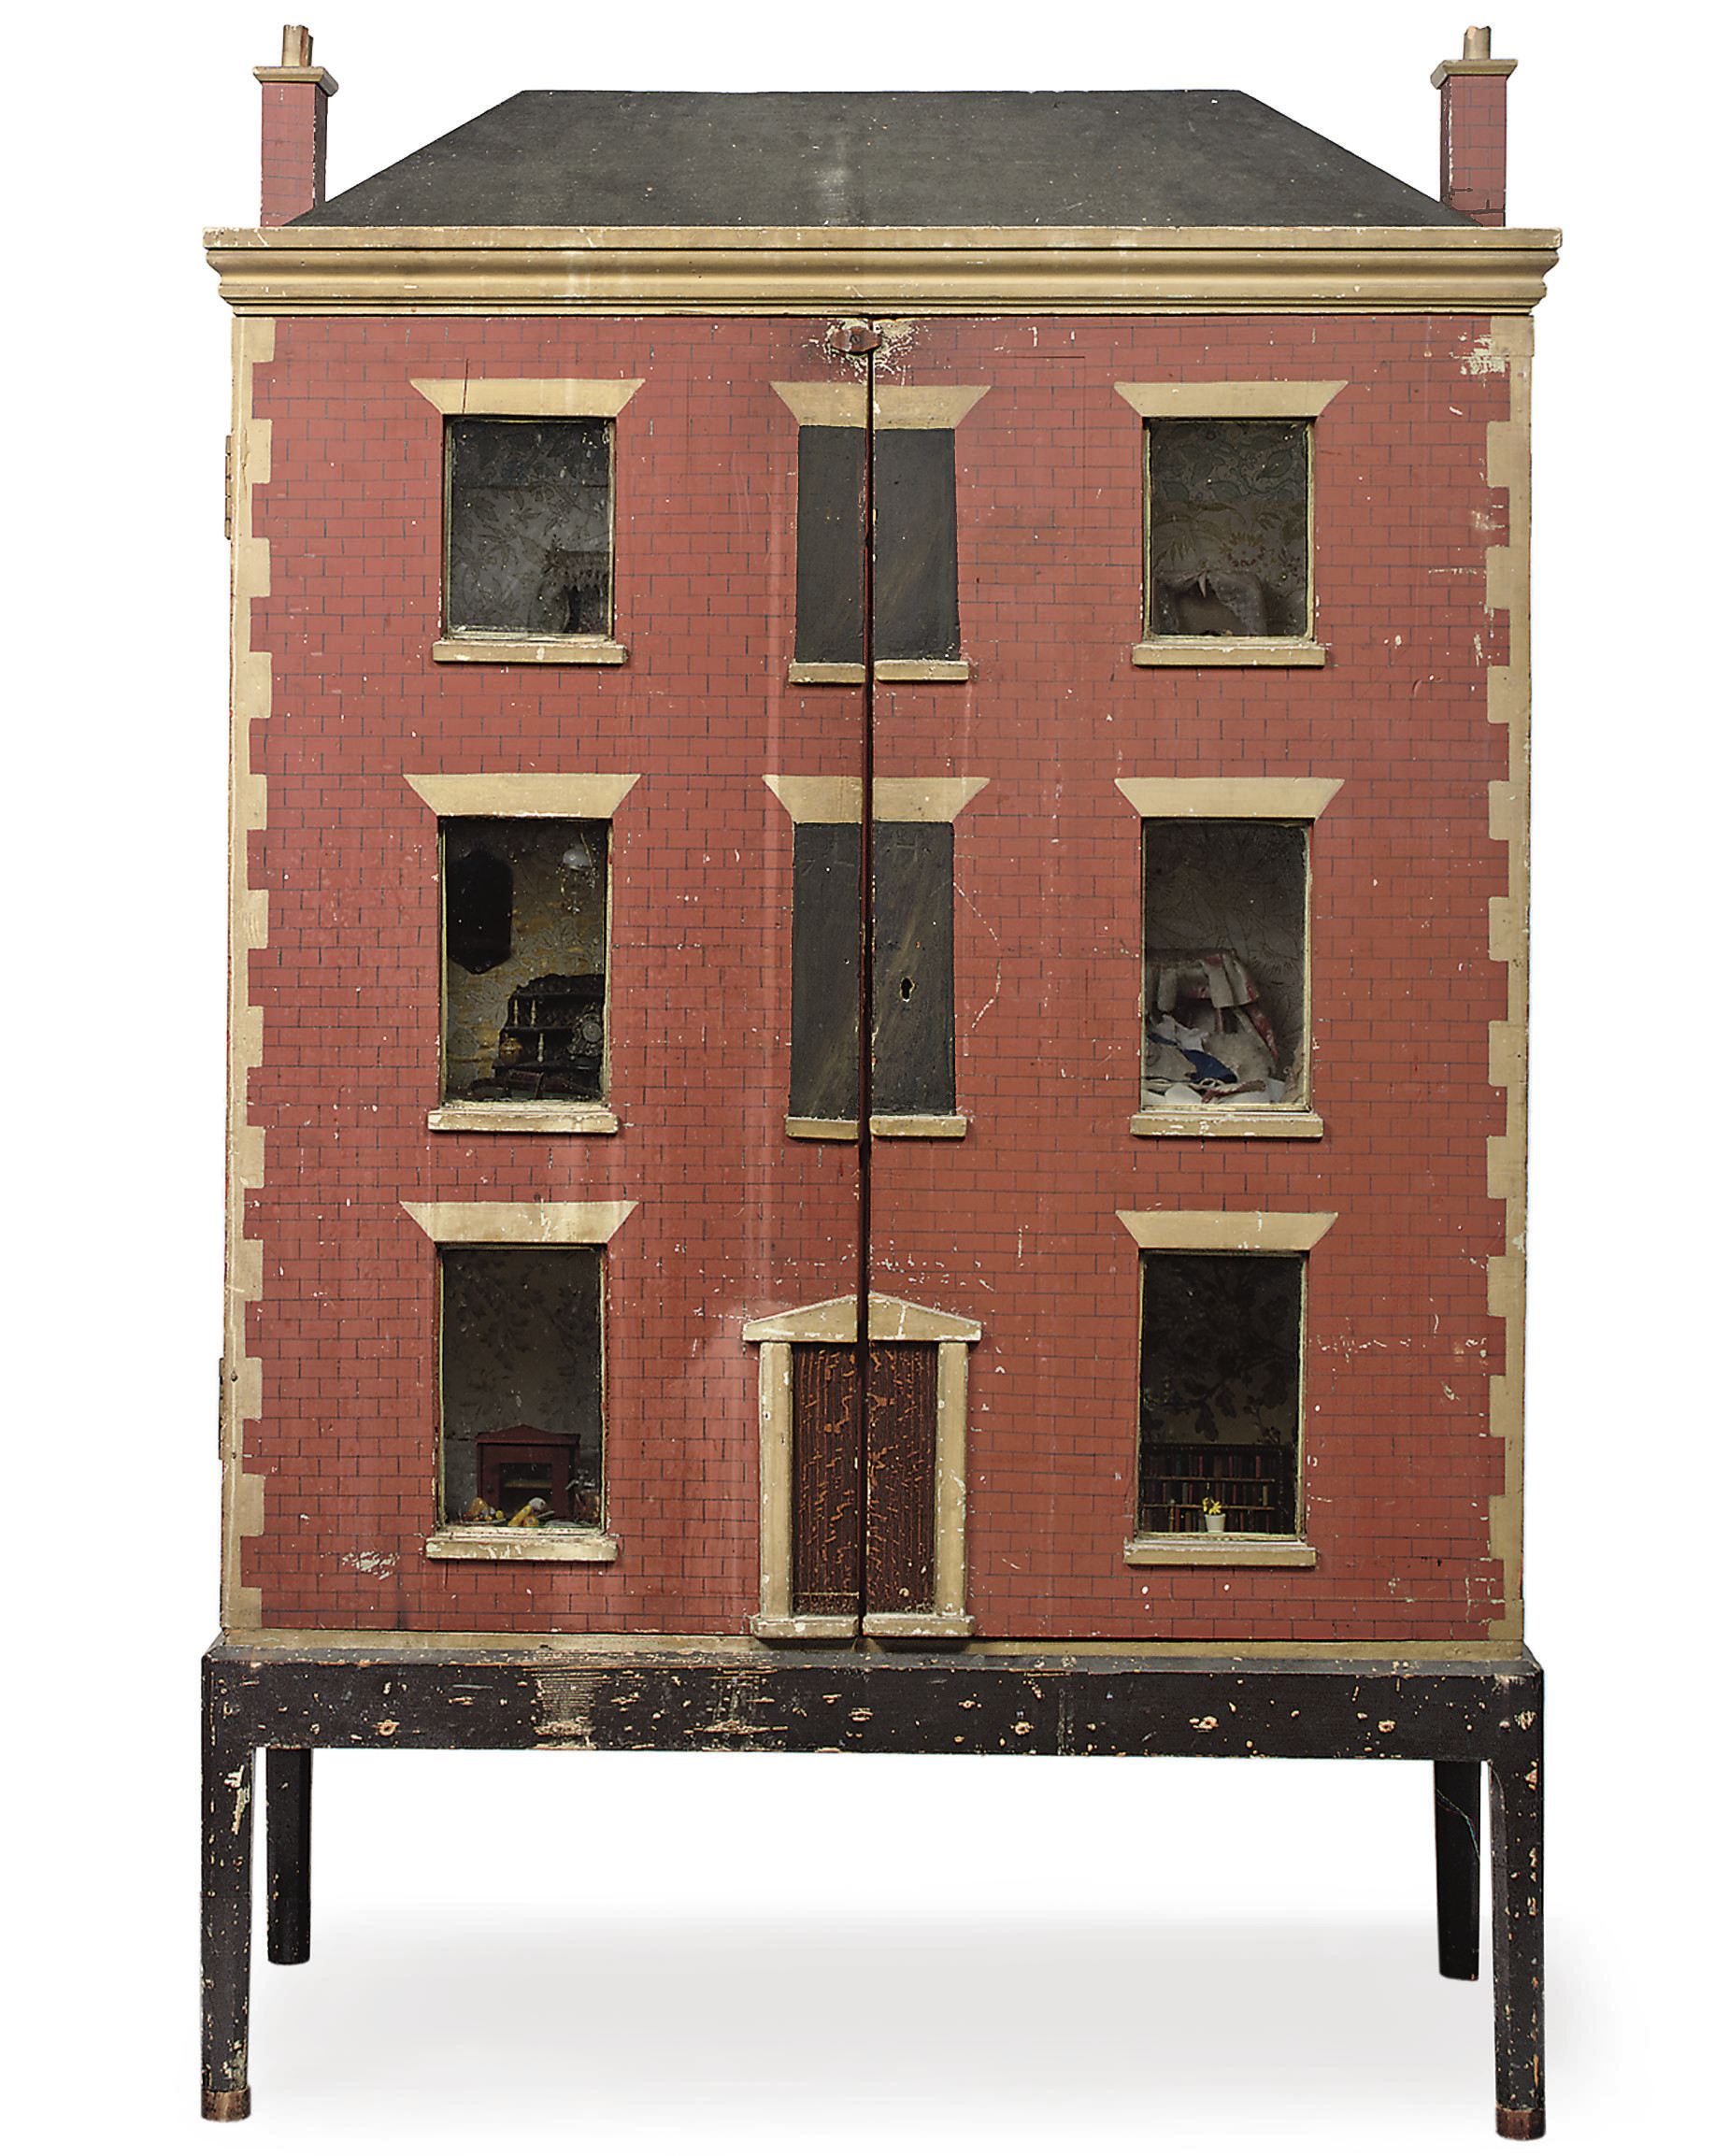 AN EARLY VICTORIAN SIX-ROOM DO